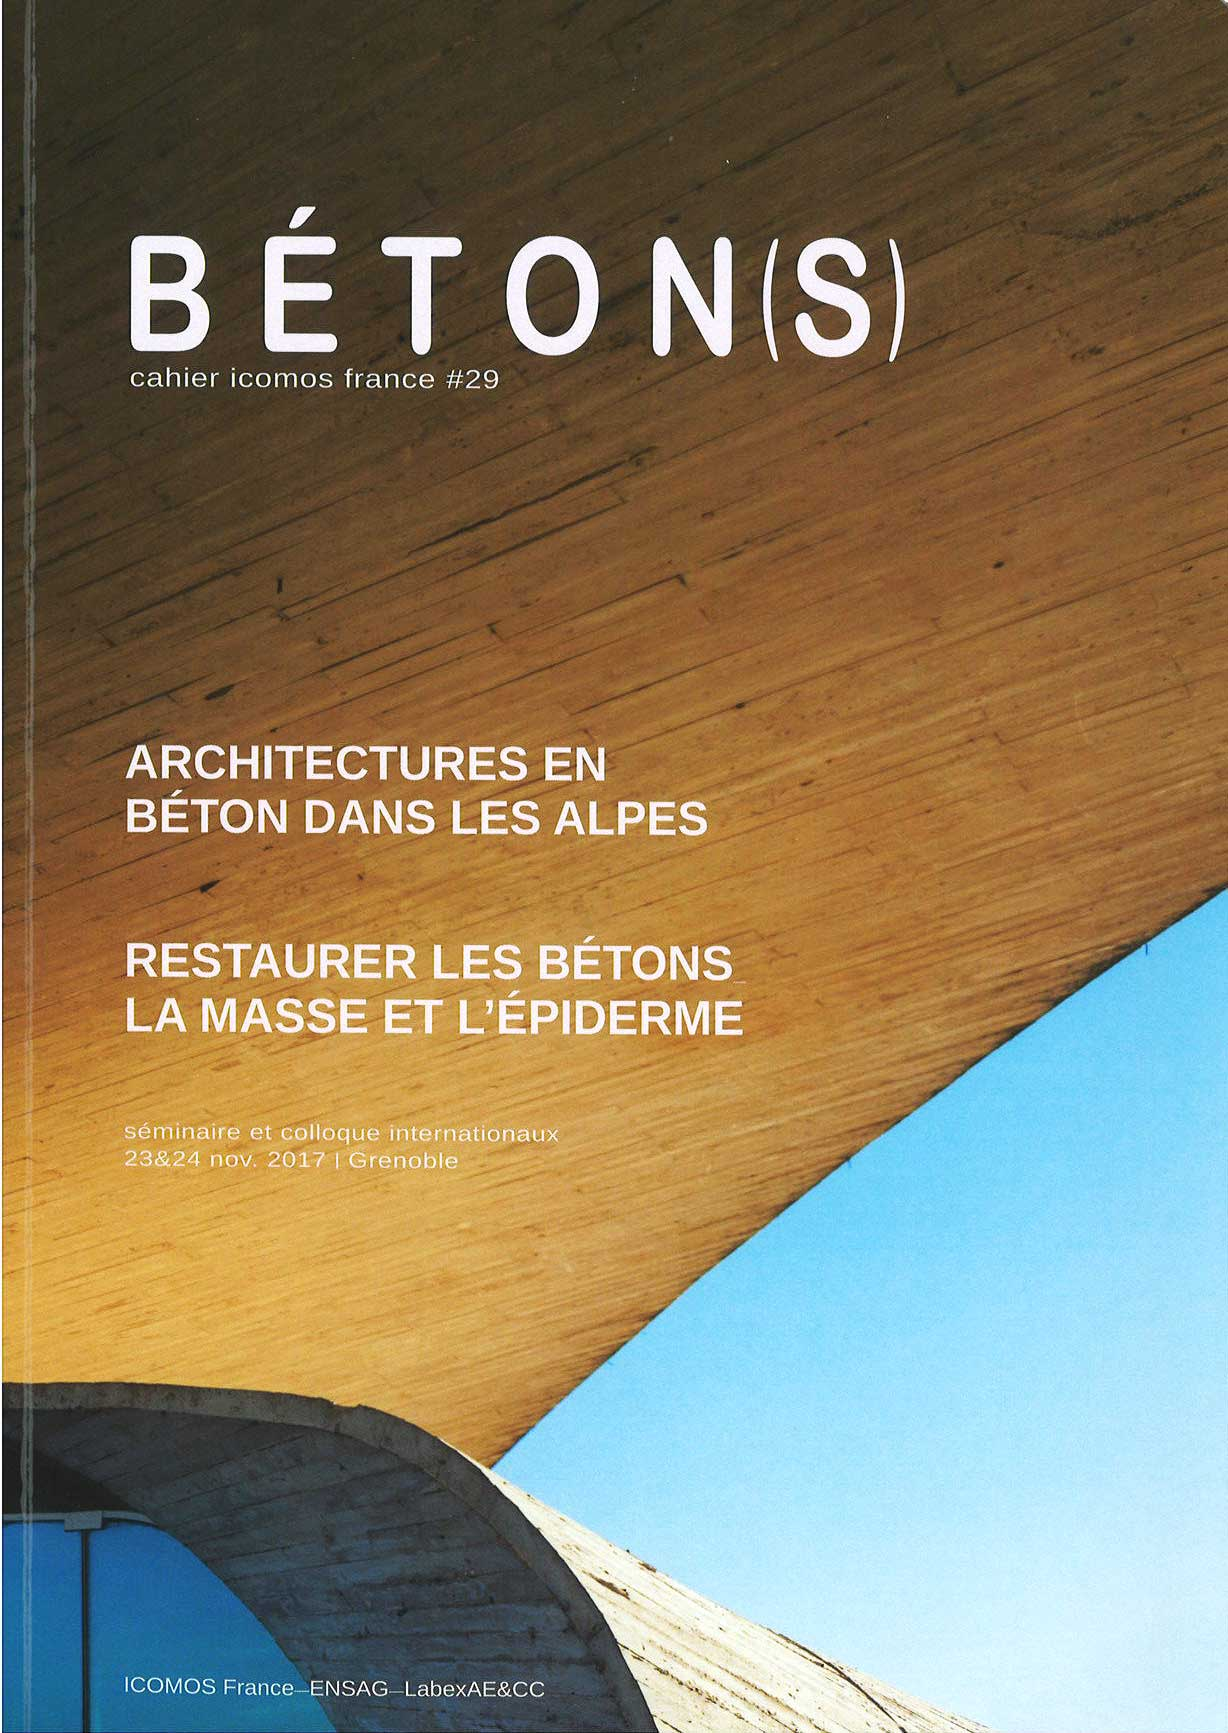 Betons Cahier ICOMOS France No29